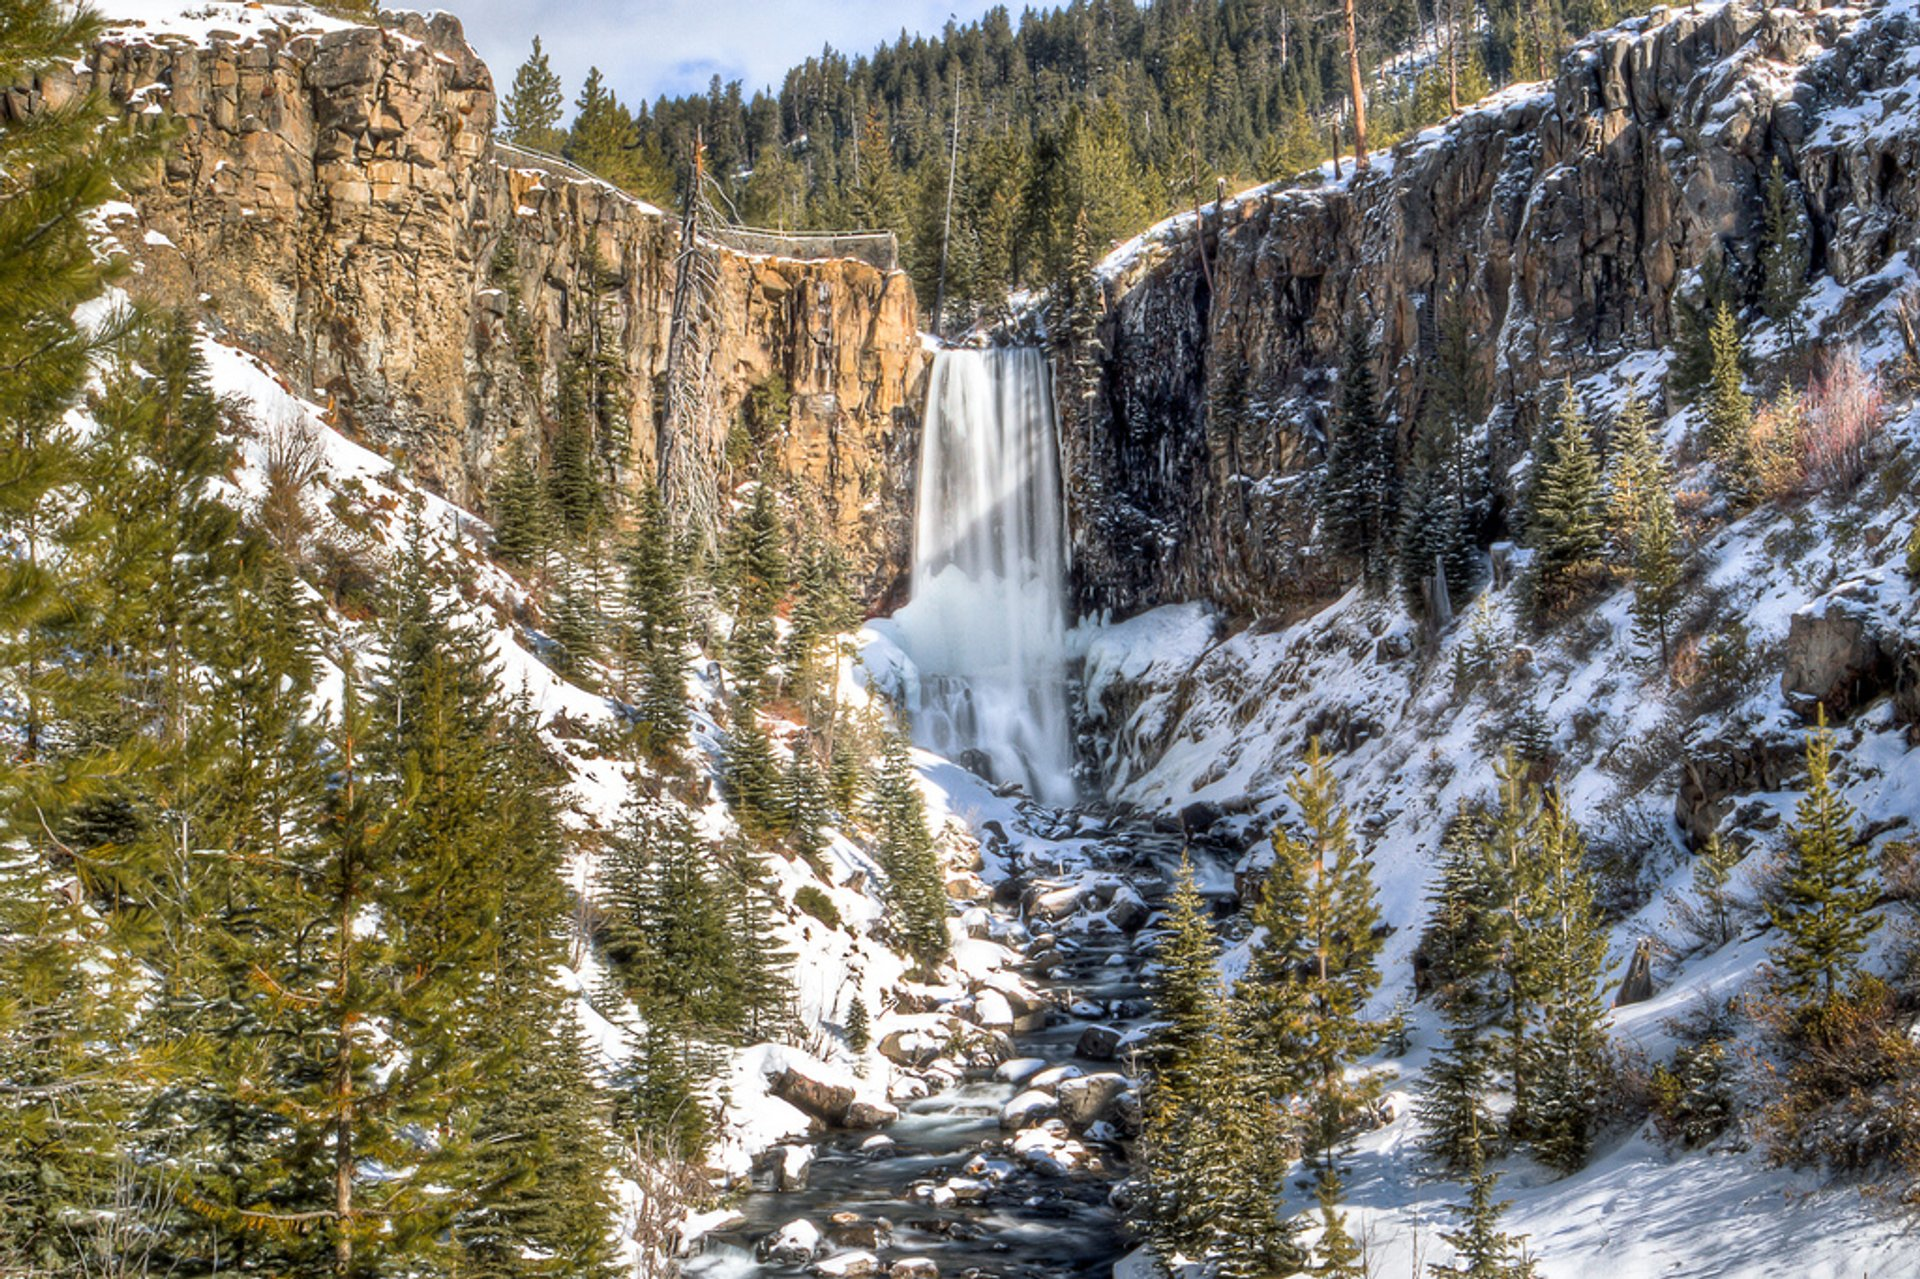 Best time for Tumalo Falls Hike in Portland 2020